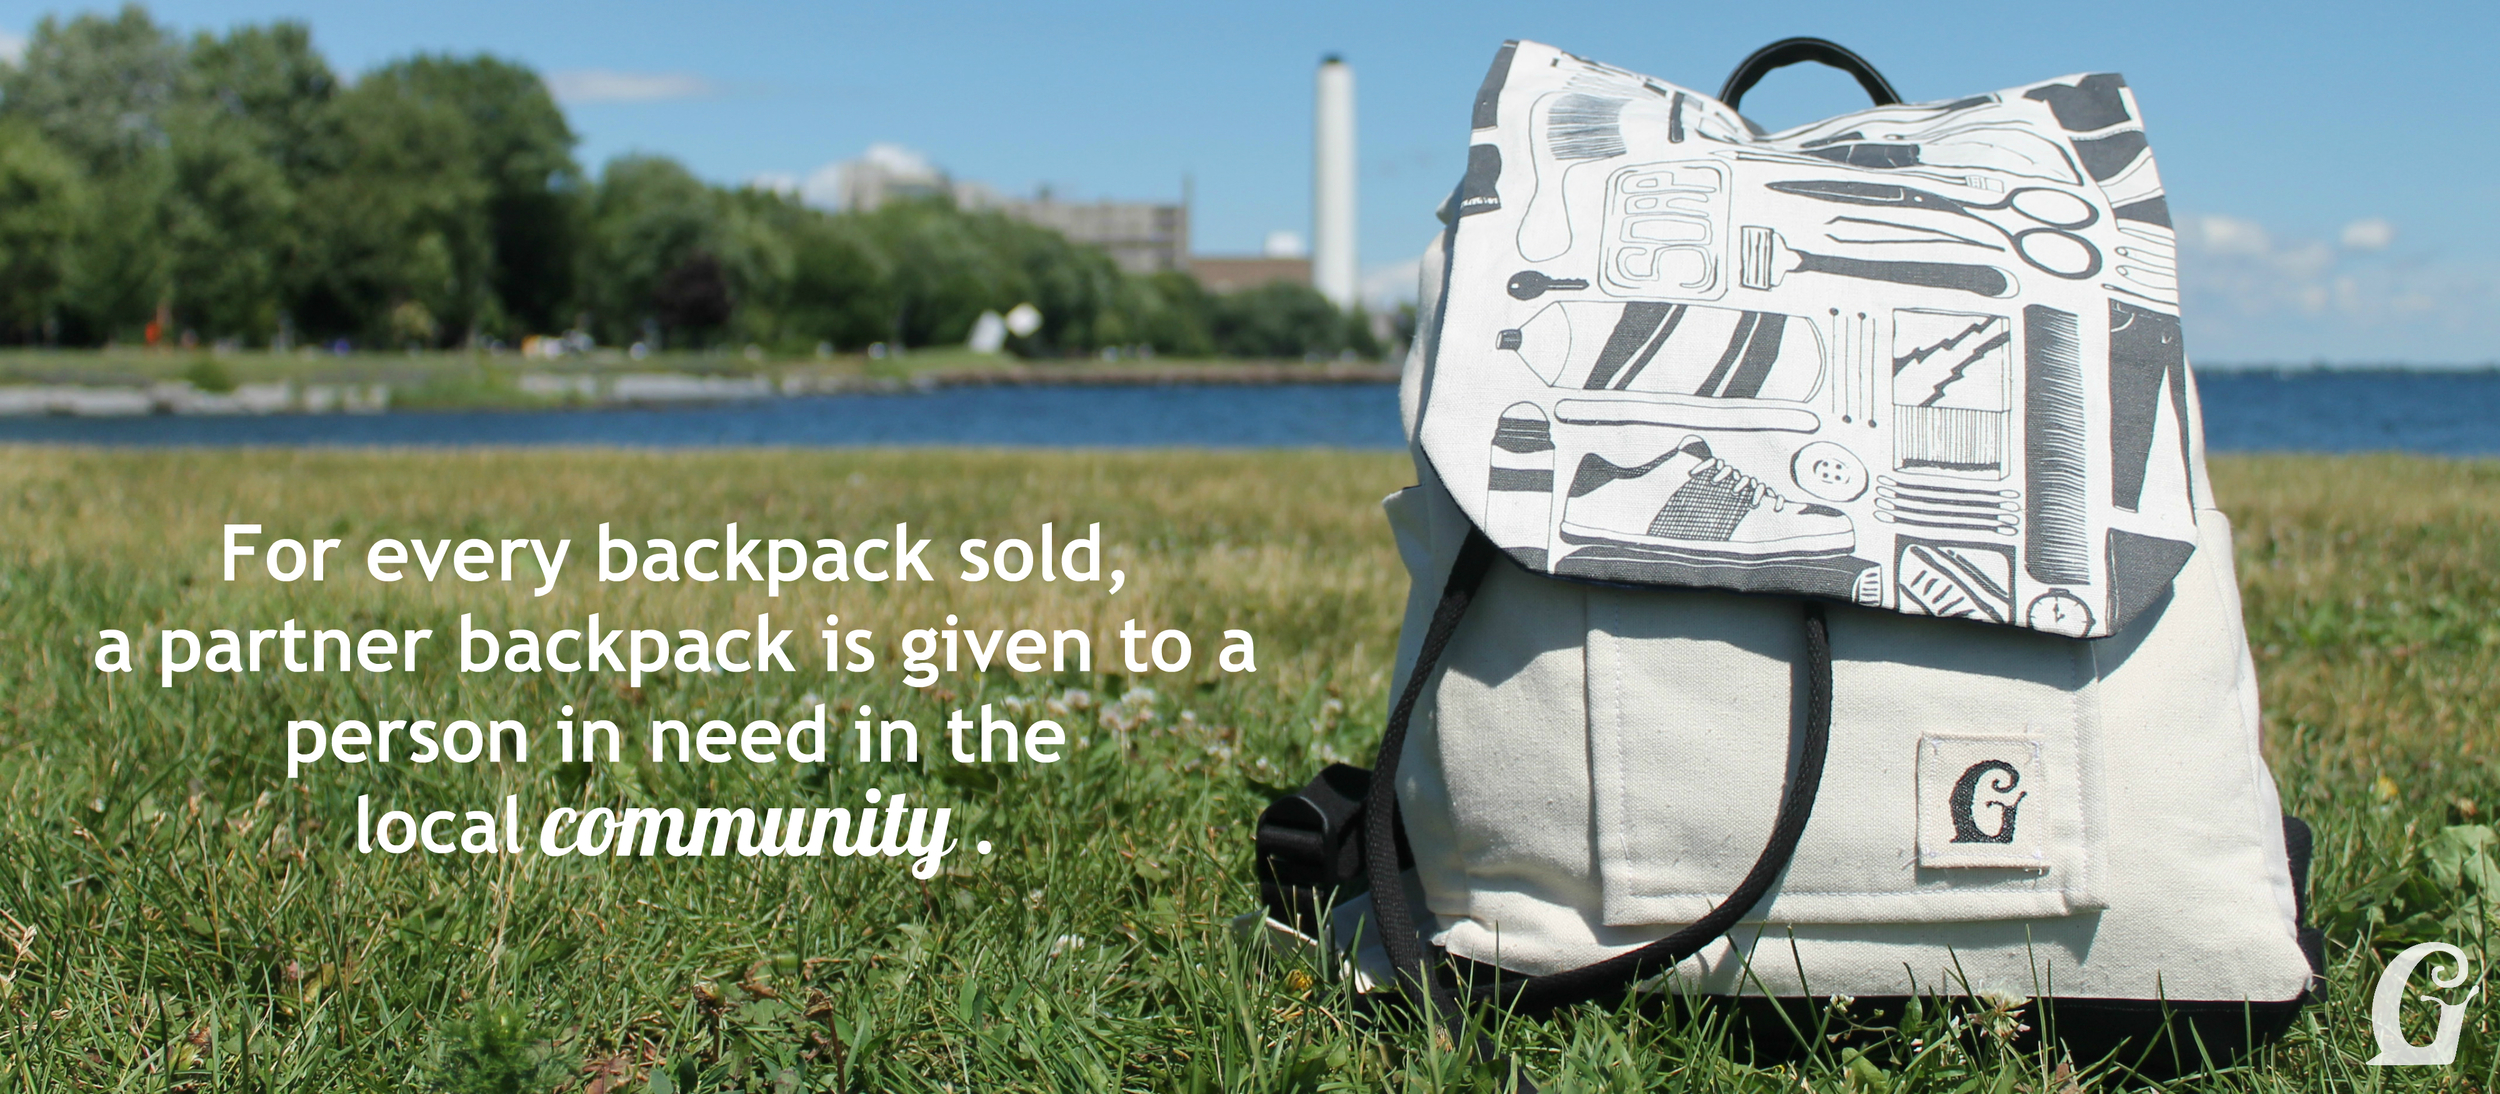 Givway & Co. Backpacks - For every backpack